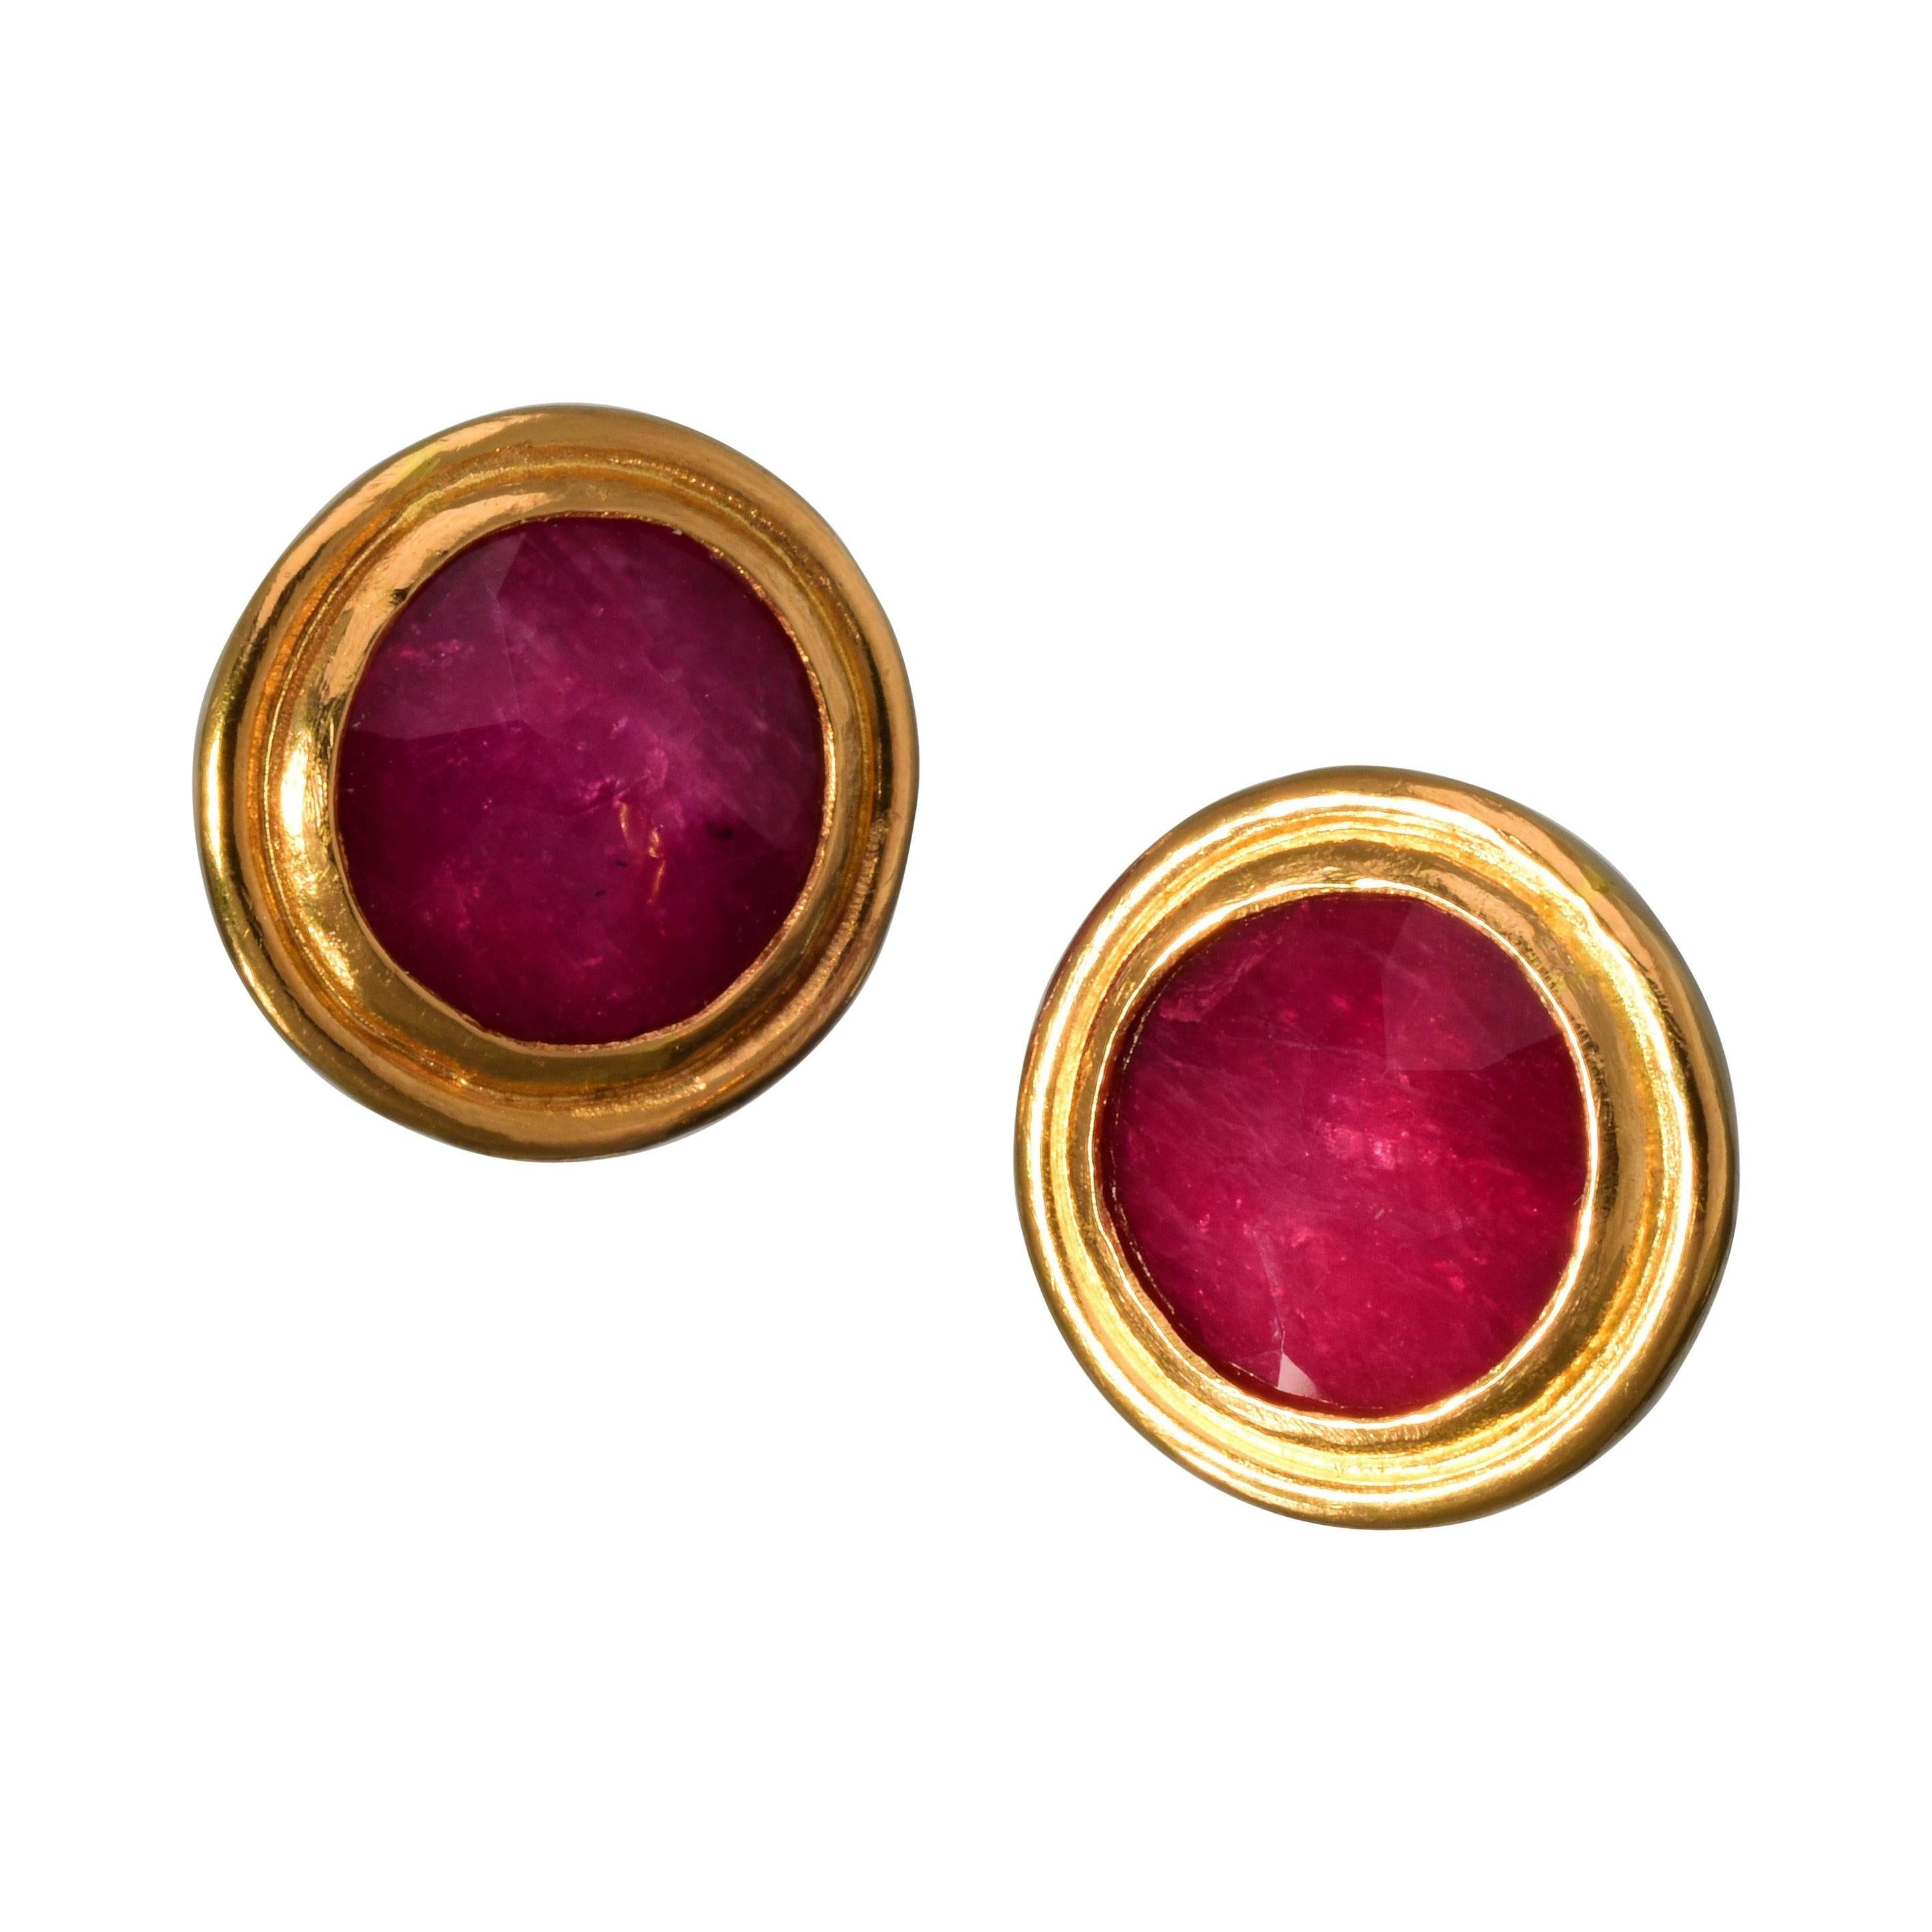 Ruby Stud Earrings Faced with Rock Crystal and Set in 22 Karat Yellow Gold